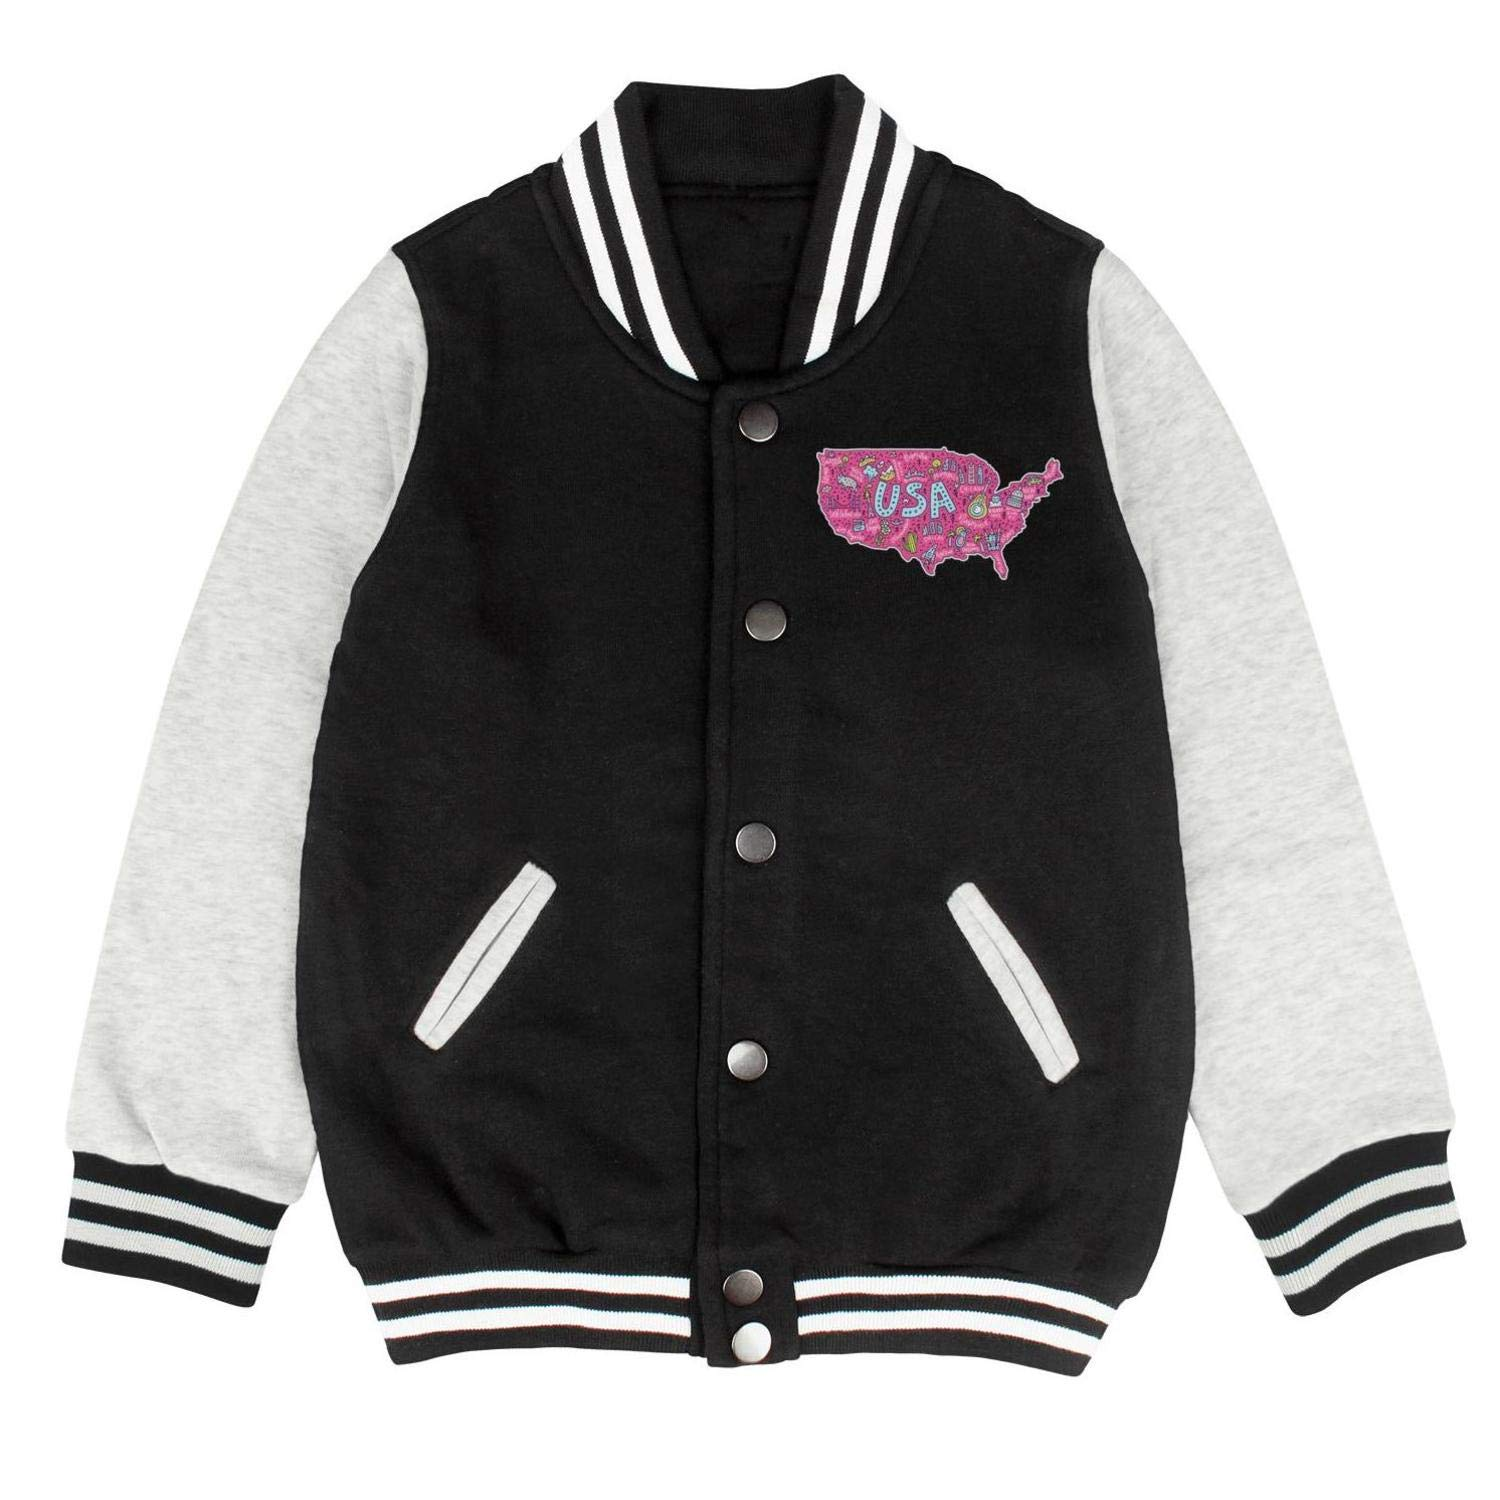 I Love New York Mmoji Baseball Pullovers Unisex Cool Fall Jackets for Boys